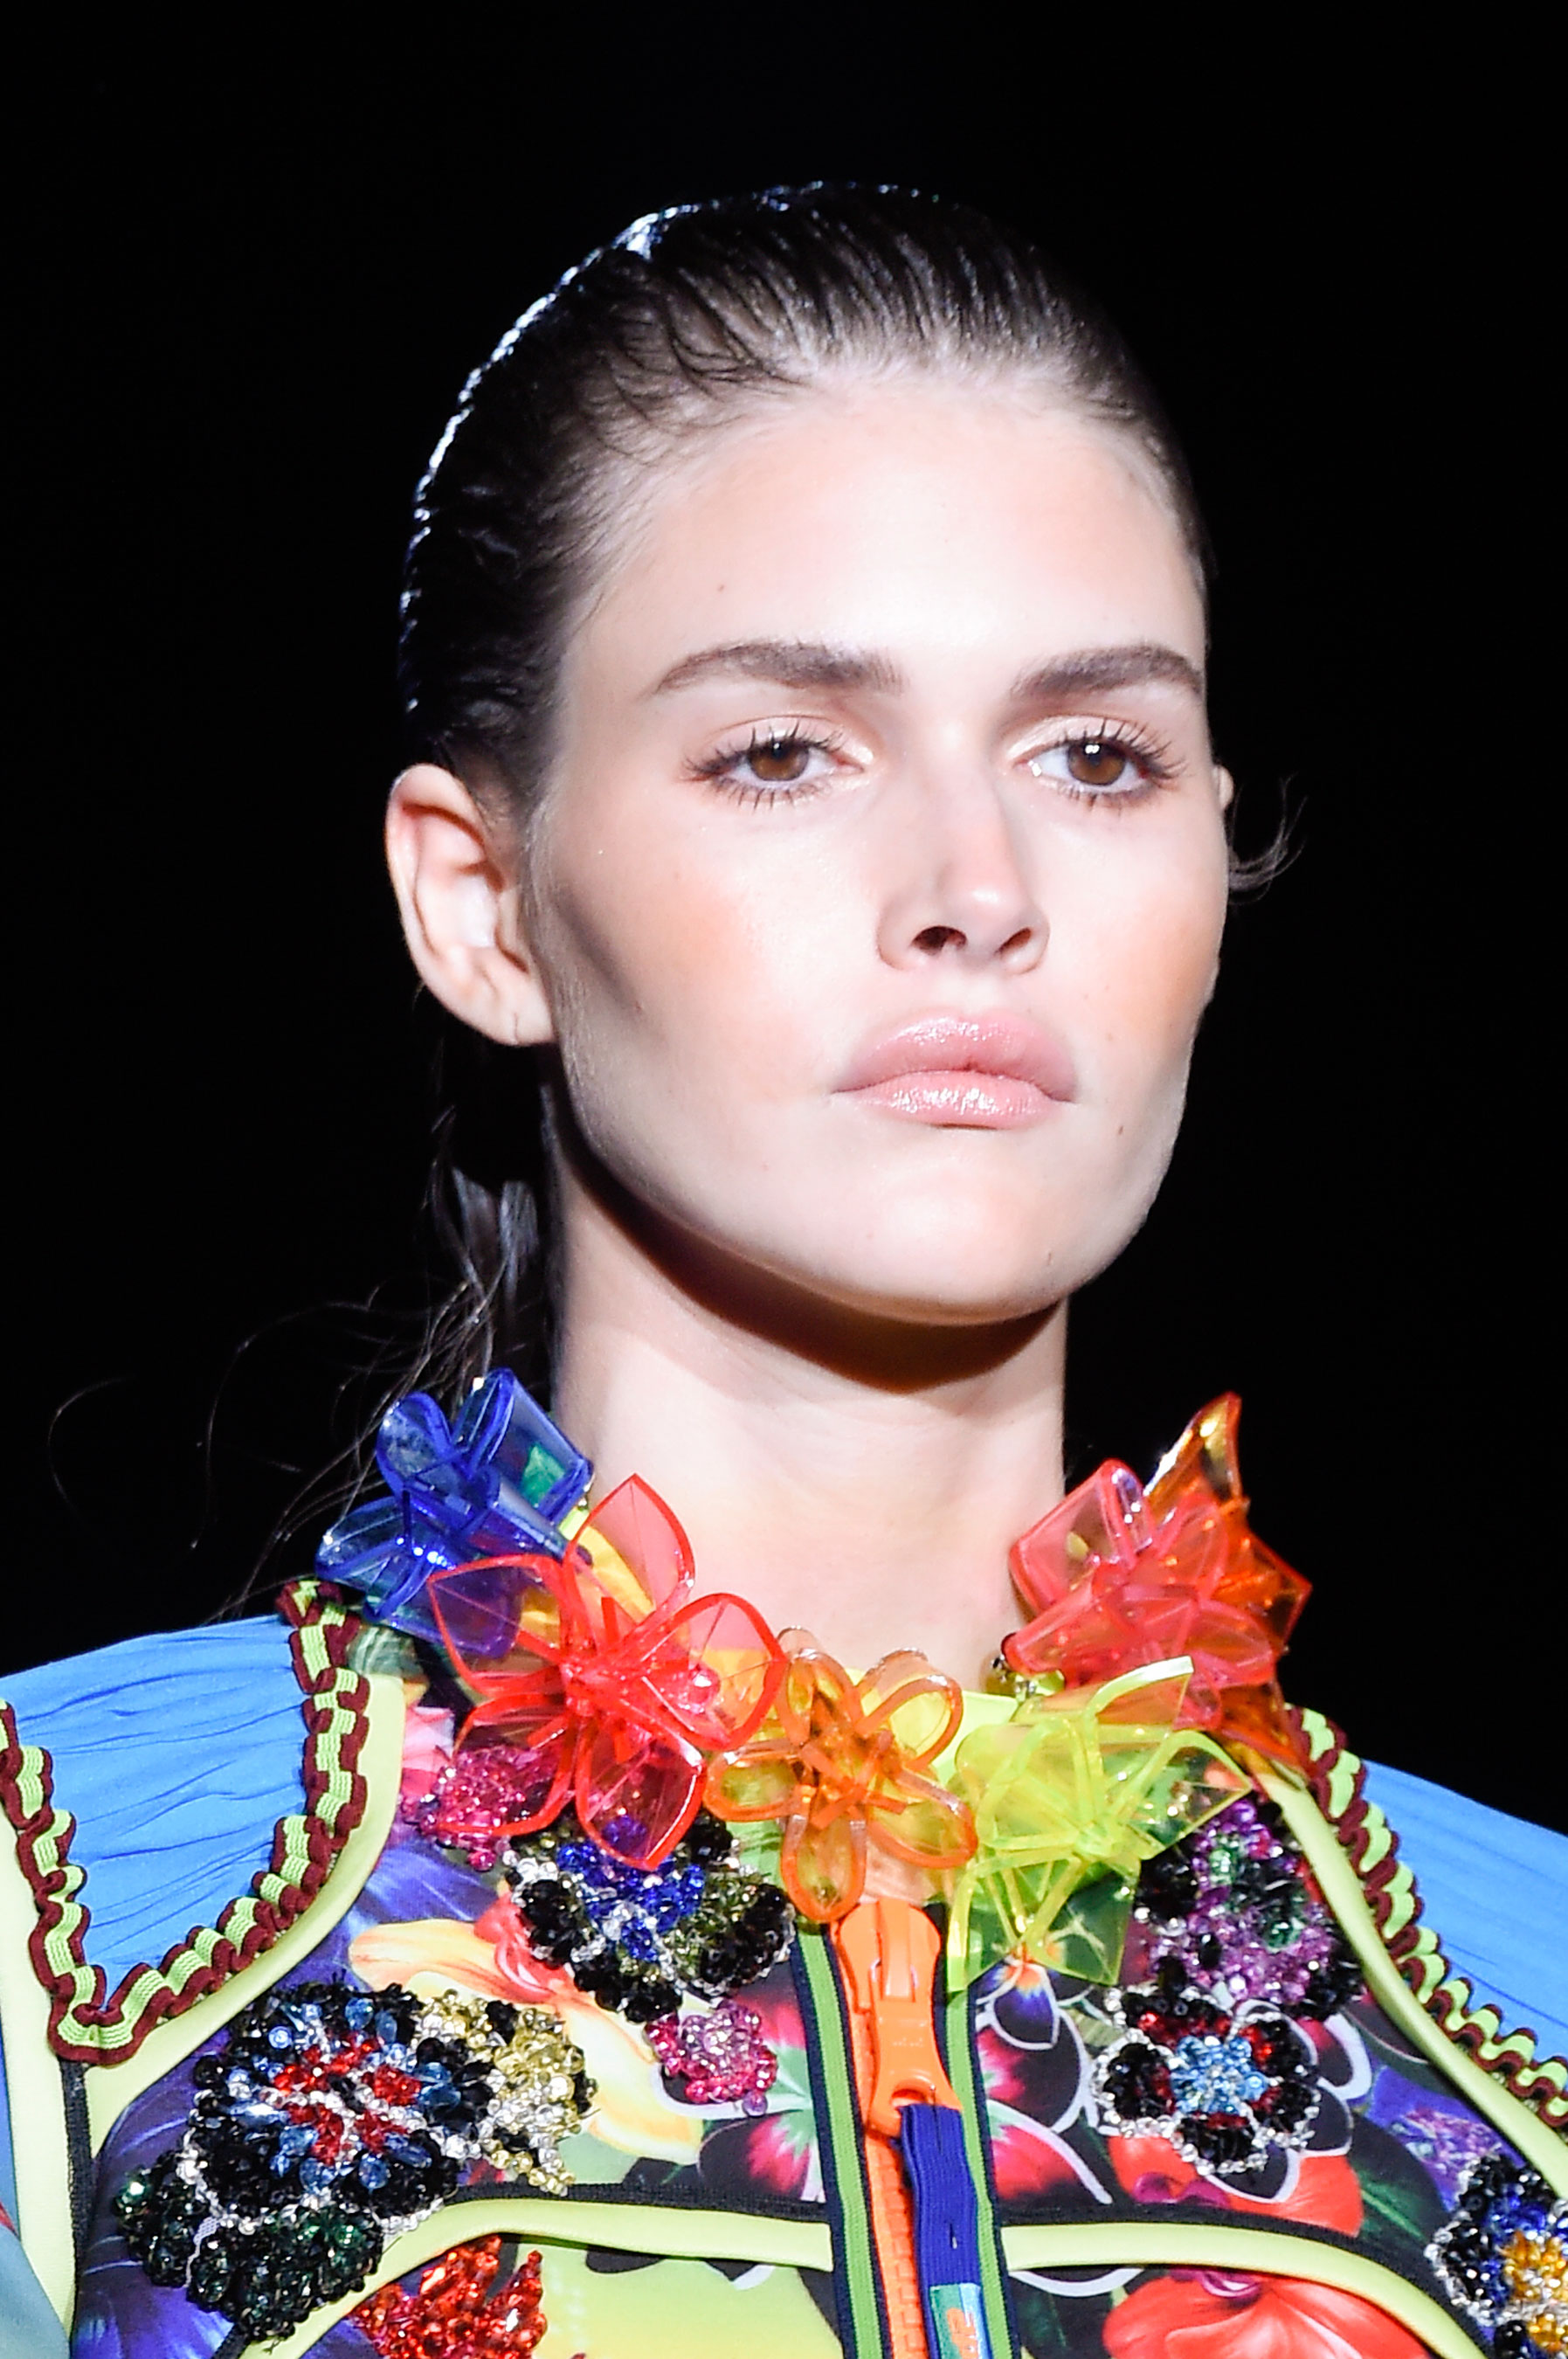 DSquared2-runway-beauty-spring-2016-fashion-show-the-impression-039